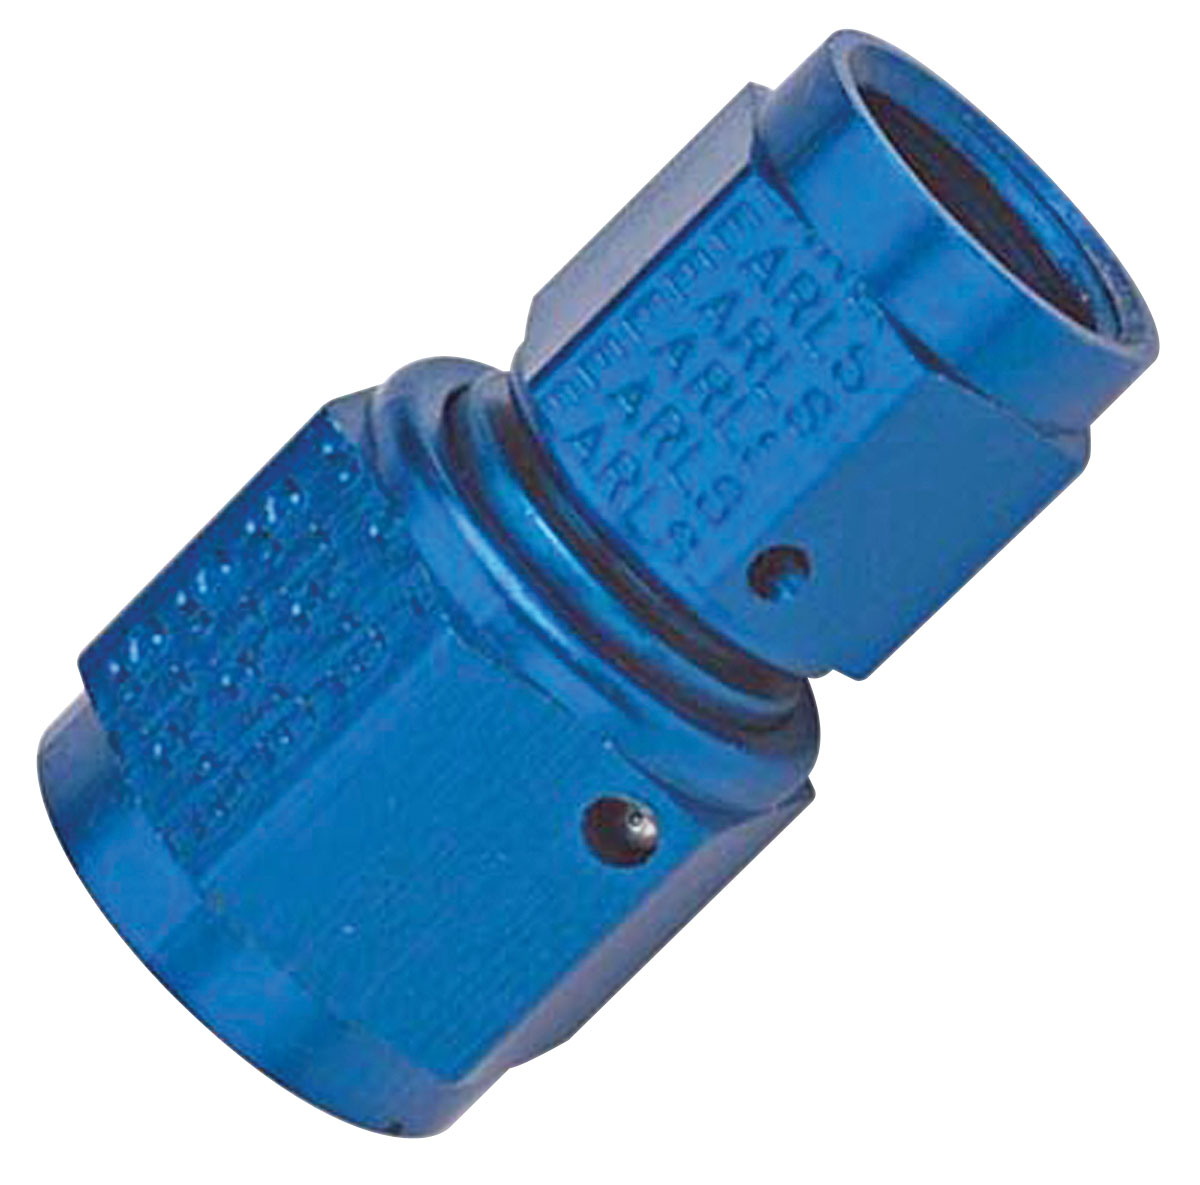 Photo of Adapter Fittings, Earl's -8 An, Swivel Coupler straight